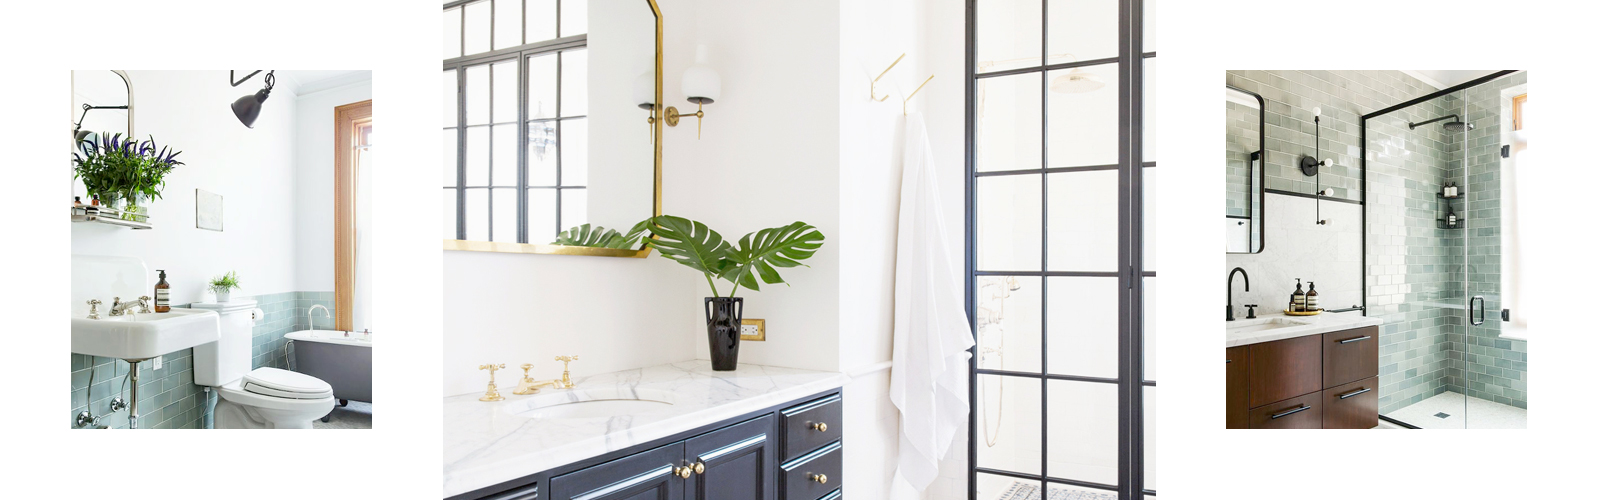 9 Ways to Make Your Bathroom Look More Expensive | MyDomaine